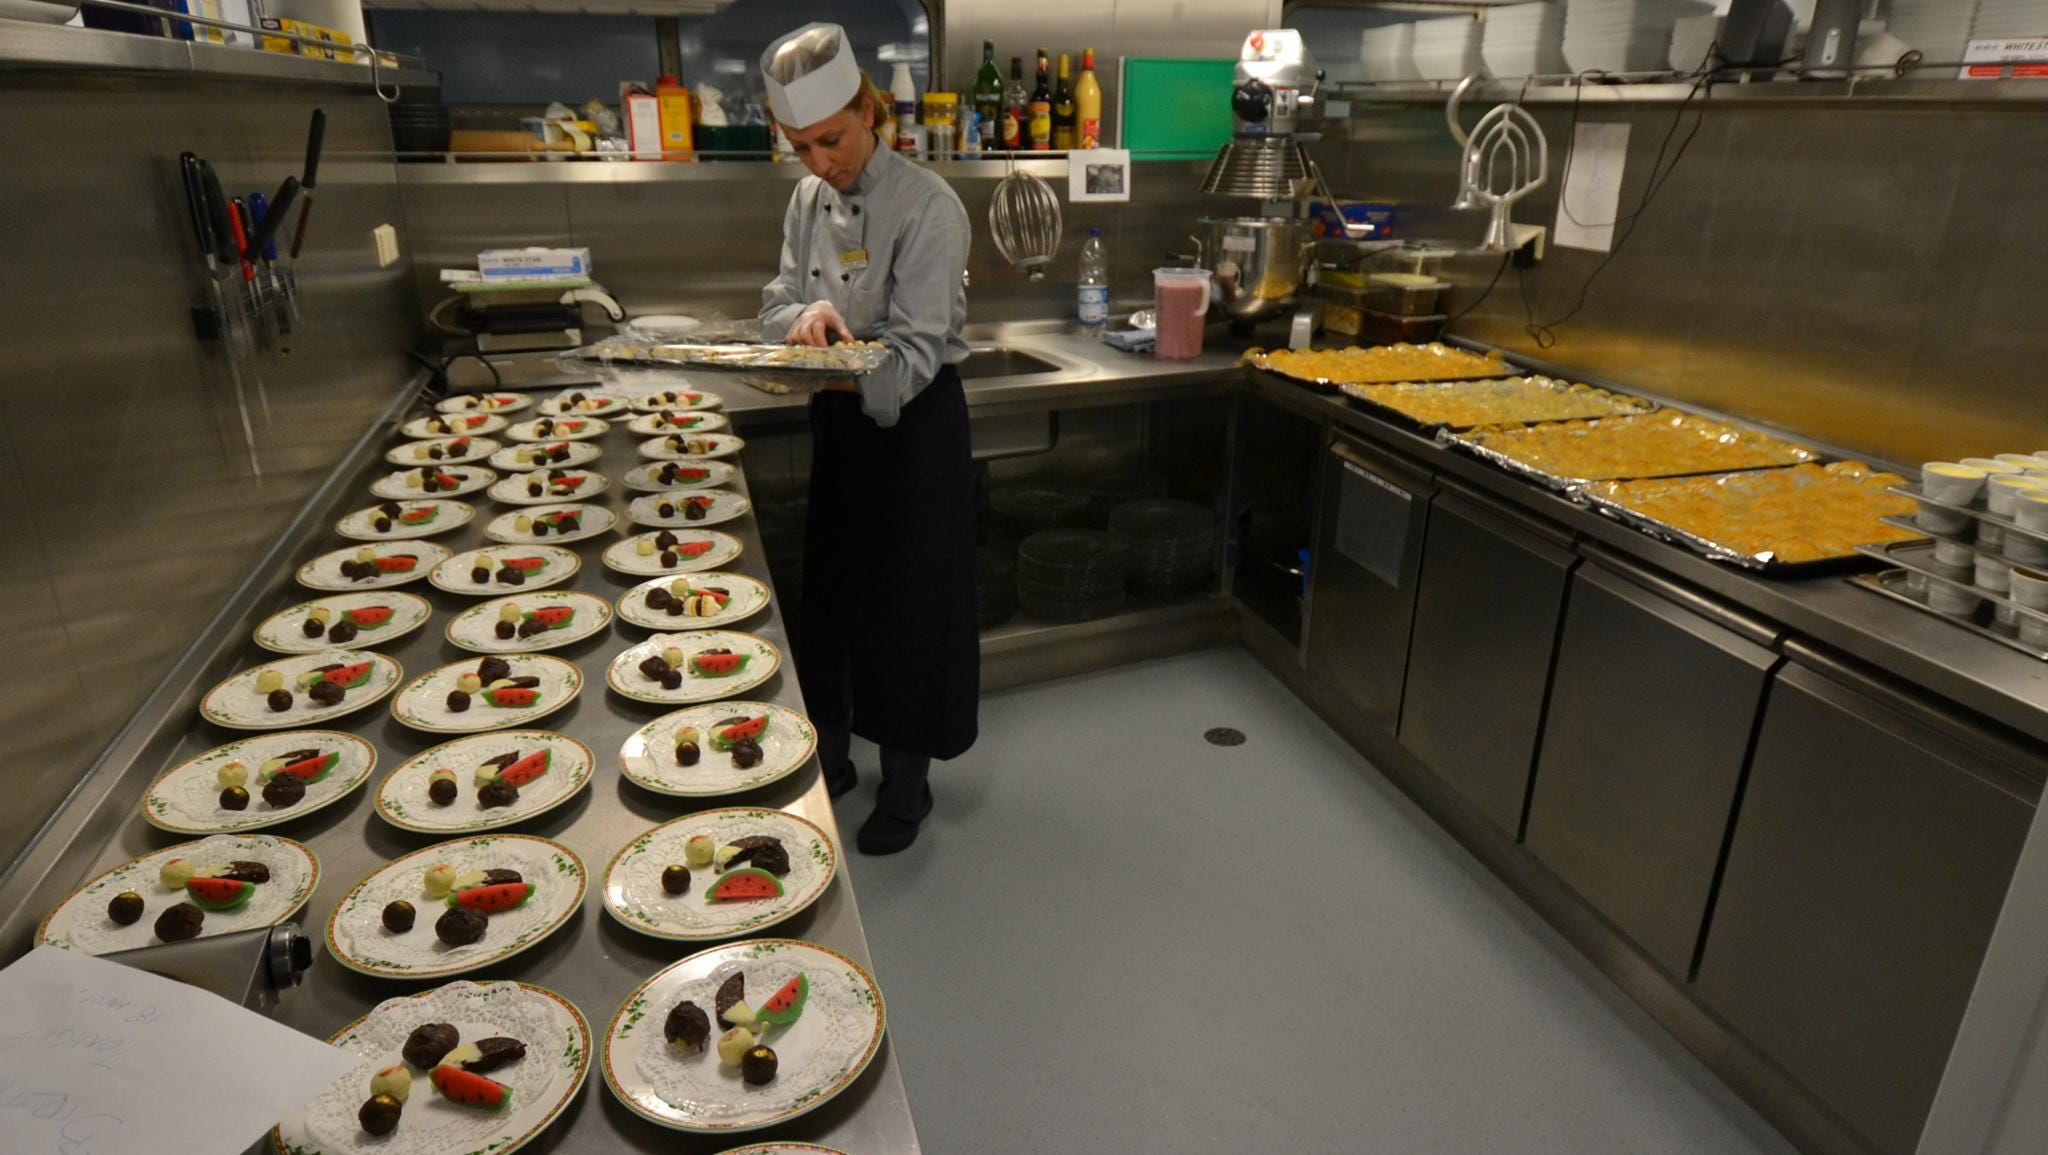 The ship's kitchen, located just below the main dining room, is where a small team prepares all of the food served on board.